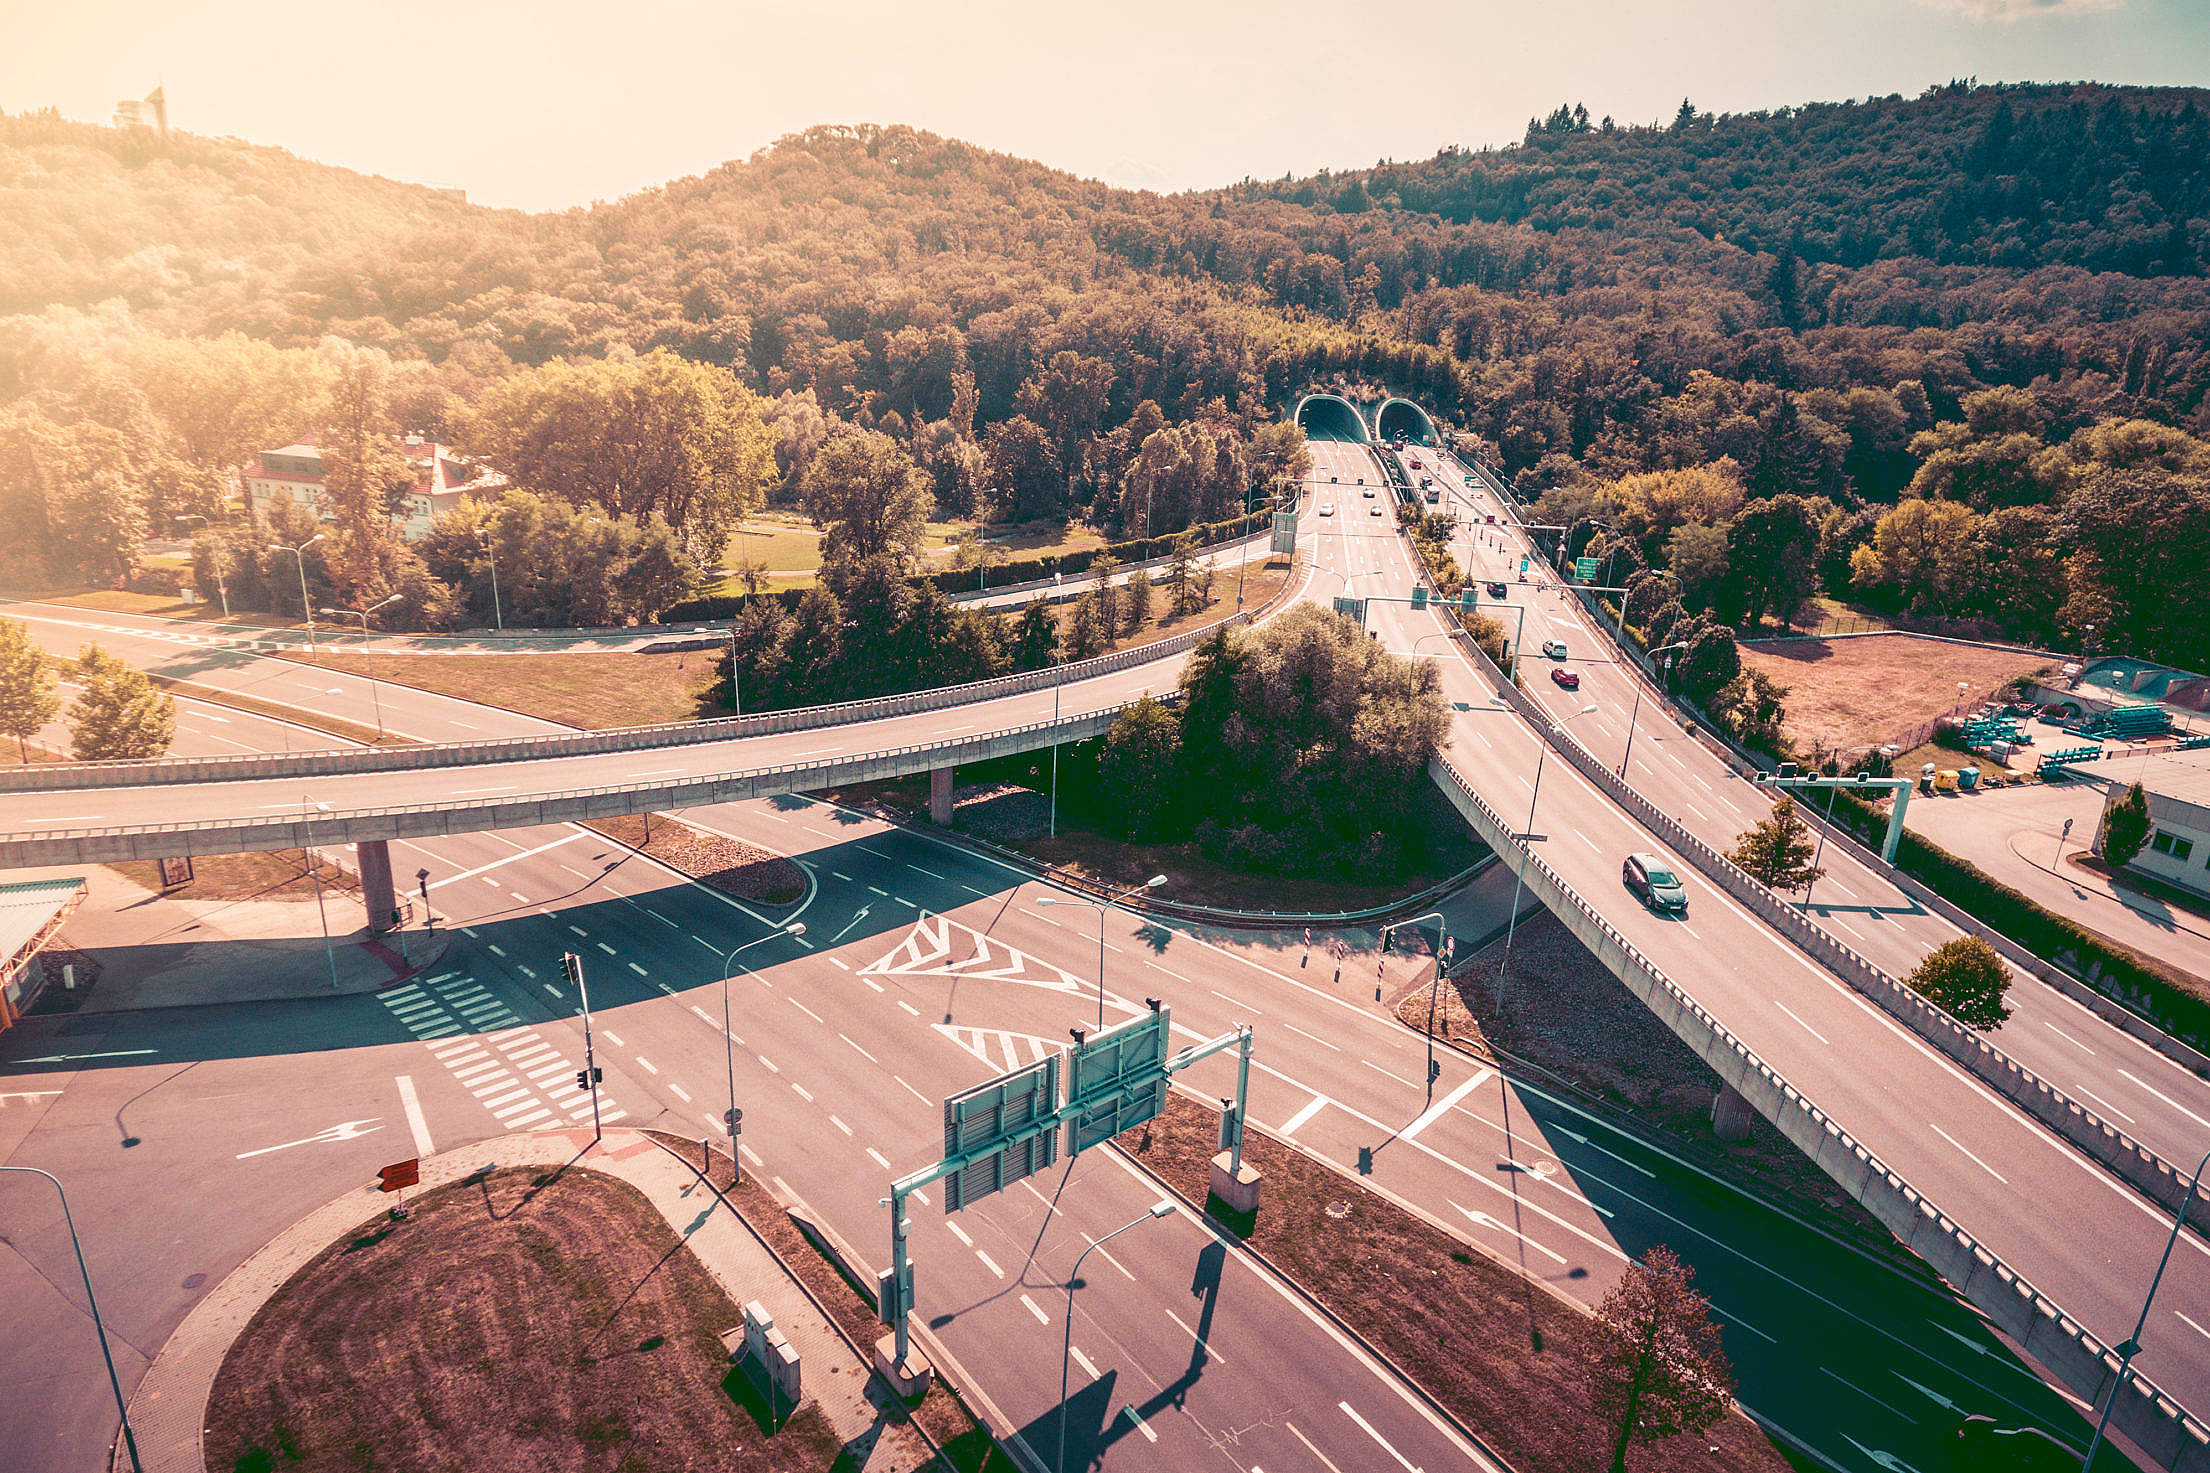 Two Level Interchange Roads with Tunnels Free Stock Photo